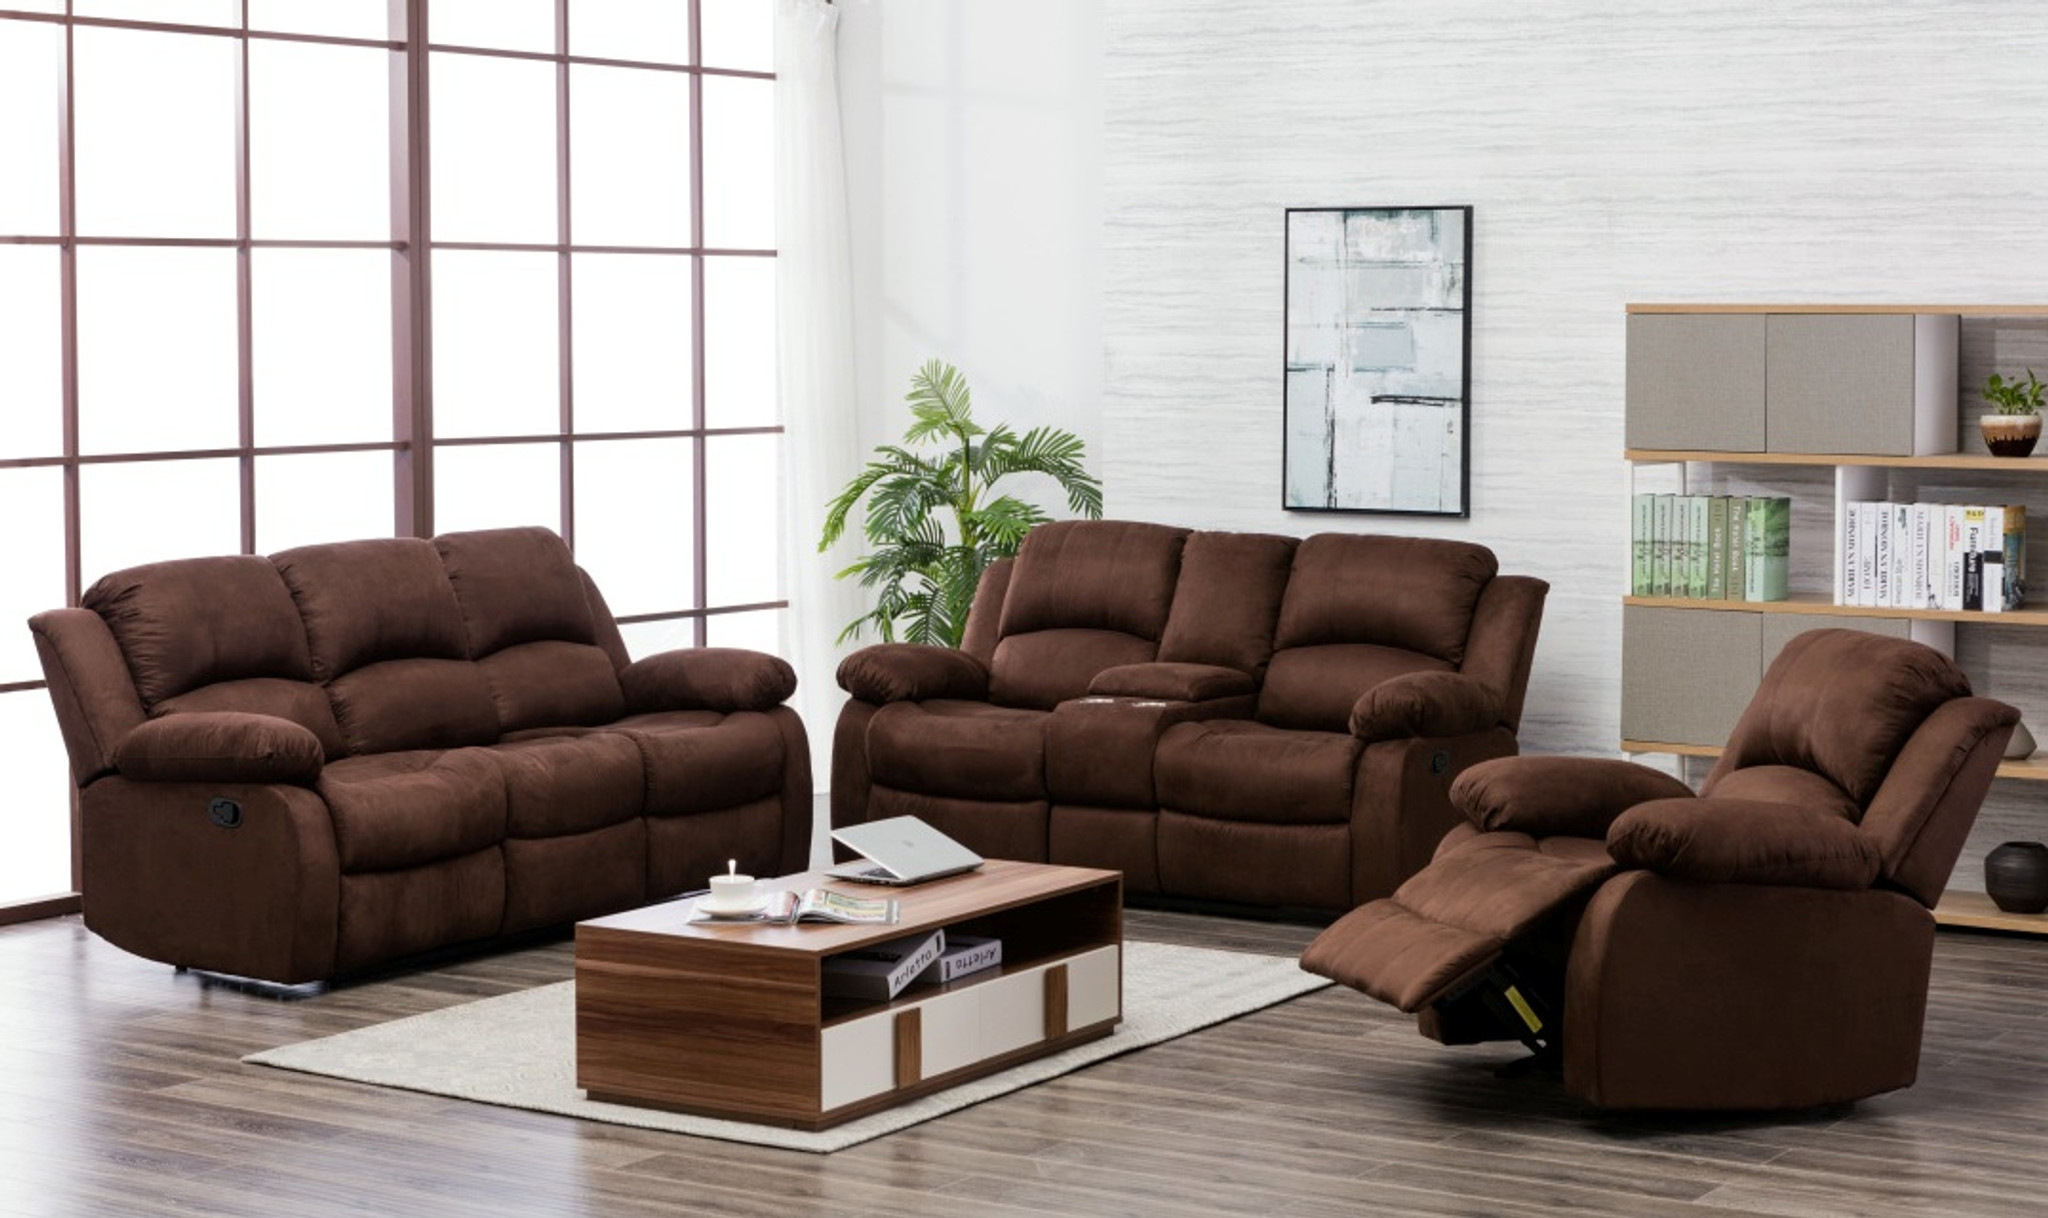 20200 2pcs Microfiber Brown Sofa And Loveseat Set Collection By Happy Homes